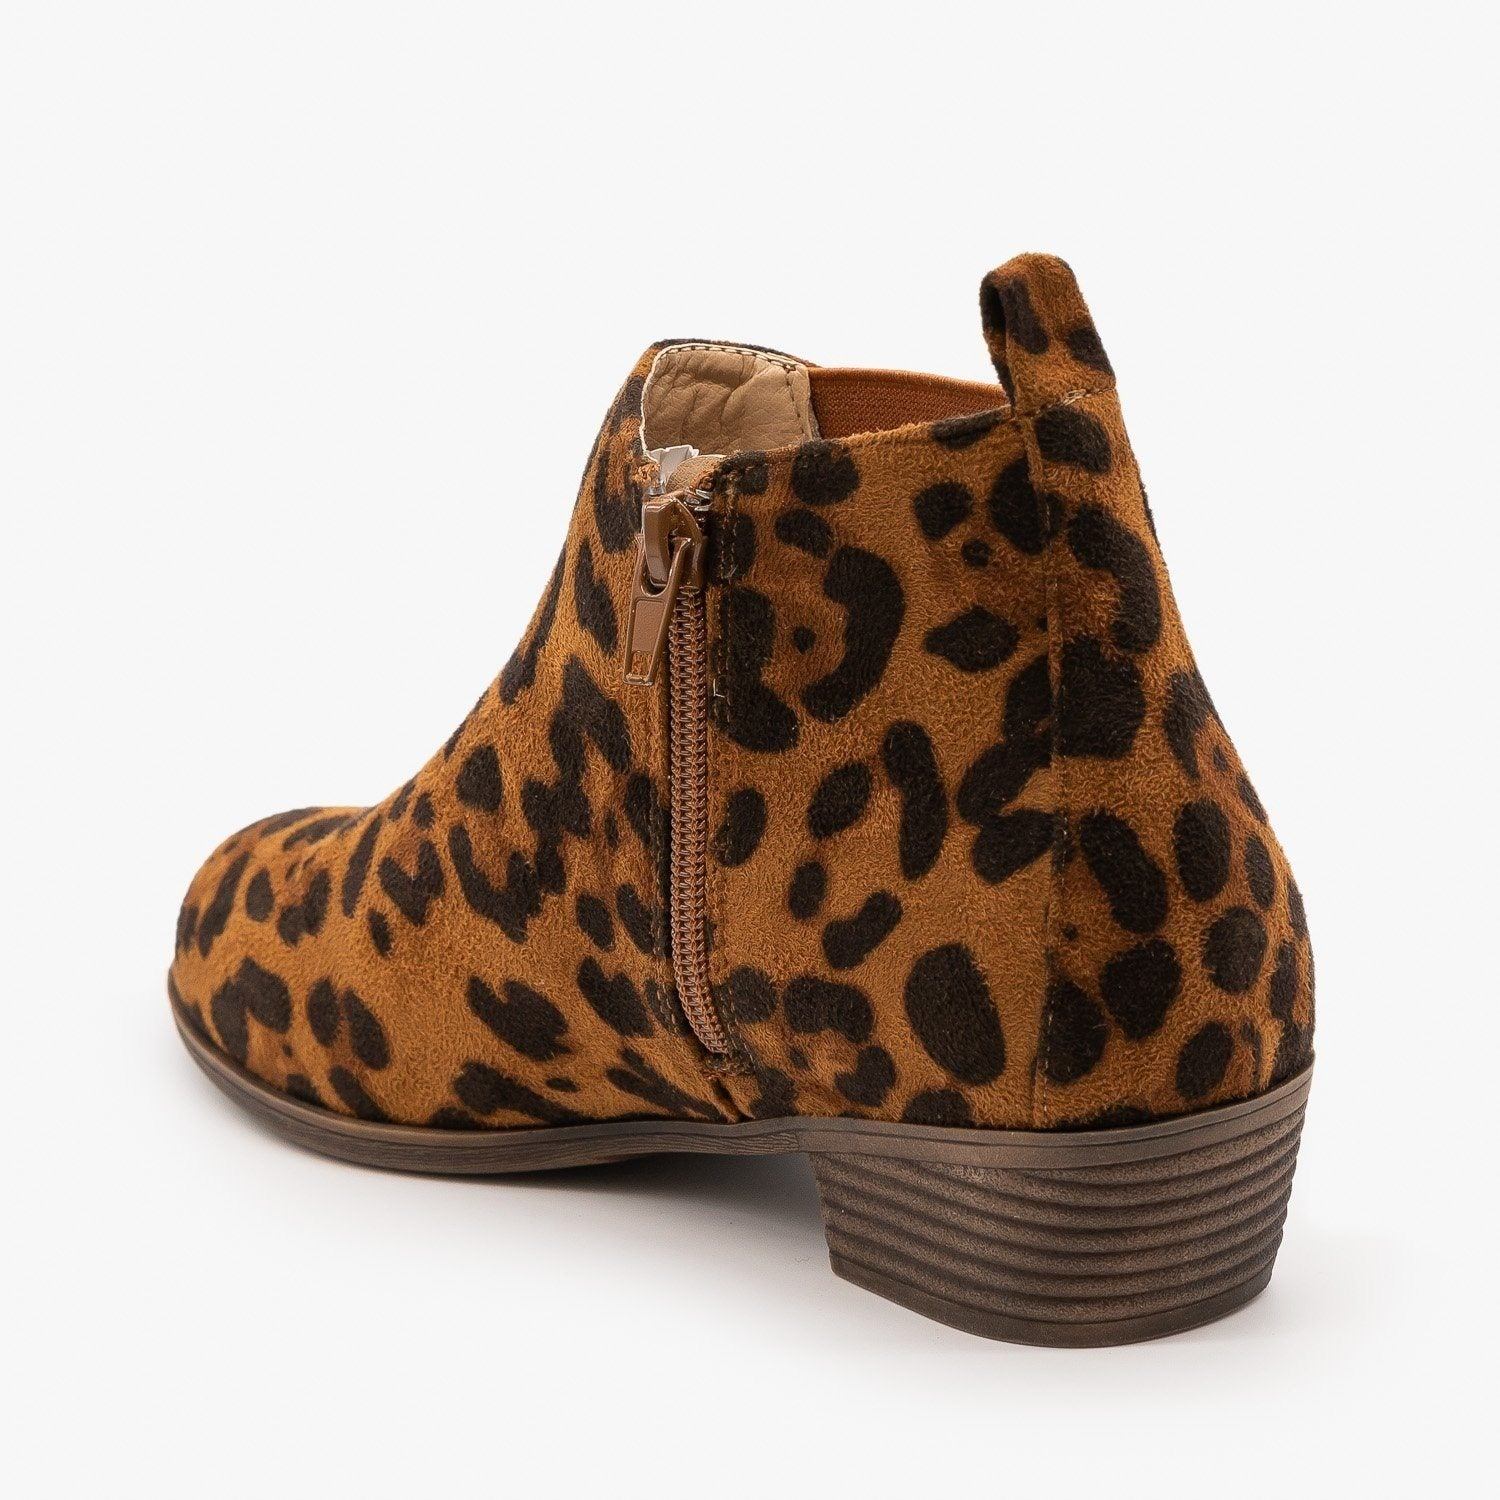 Cute Leopard Print Ankle Booties - Mata